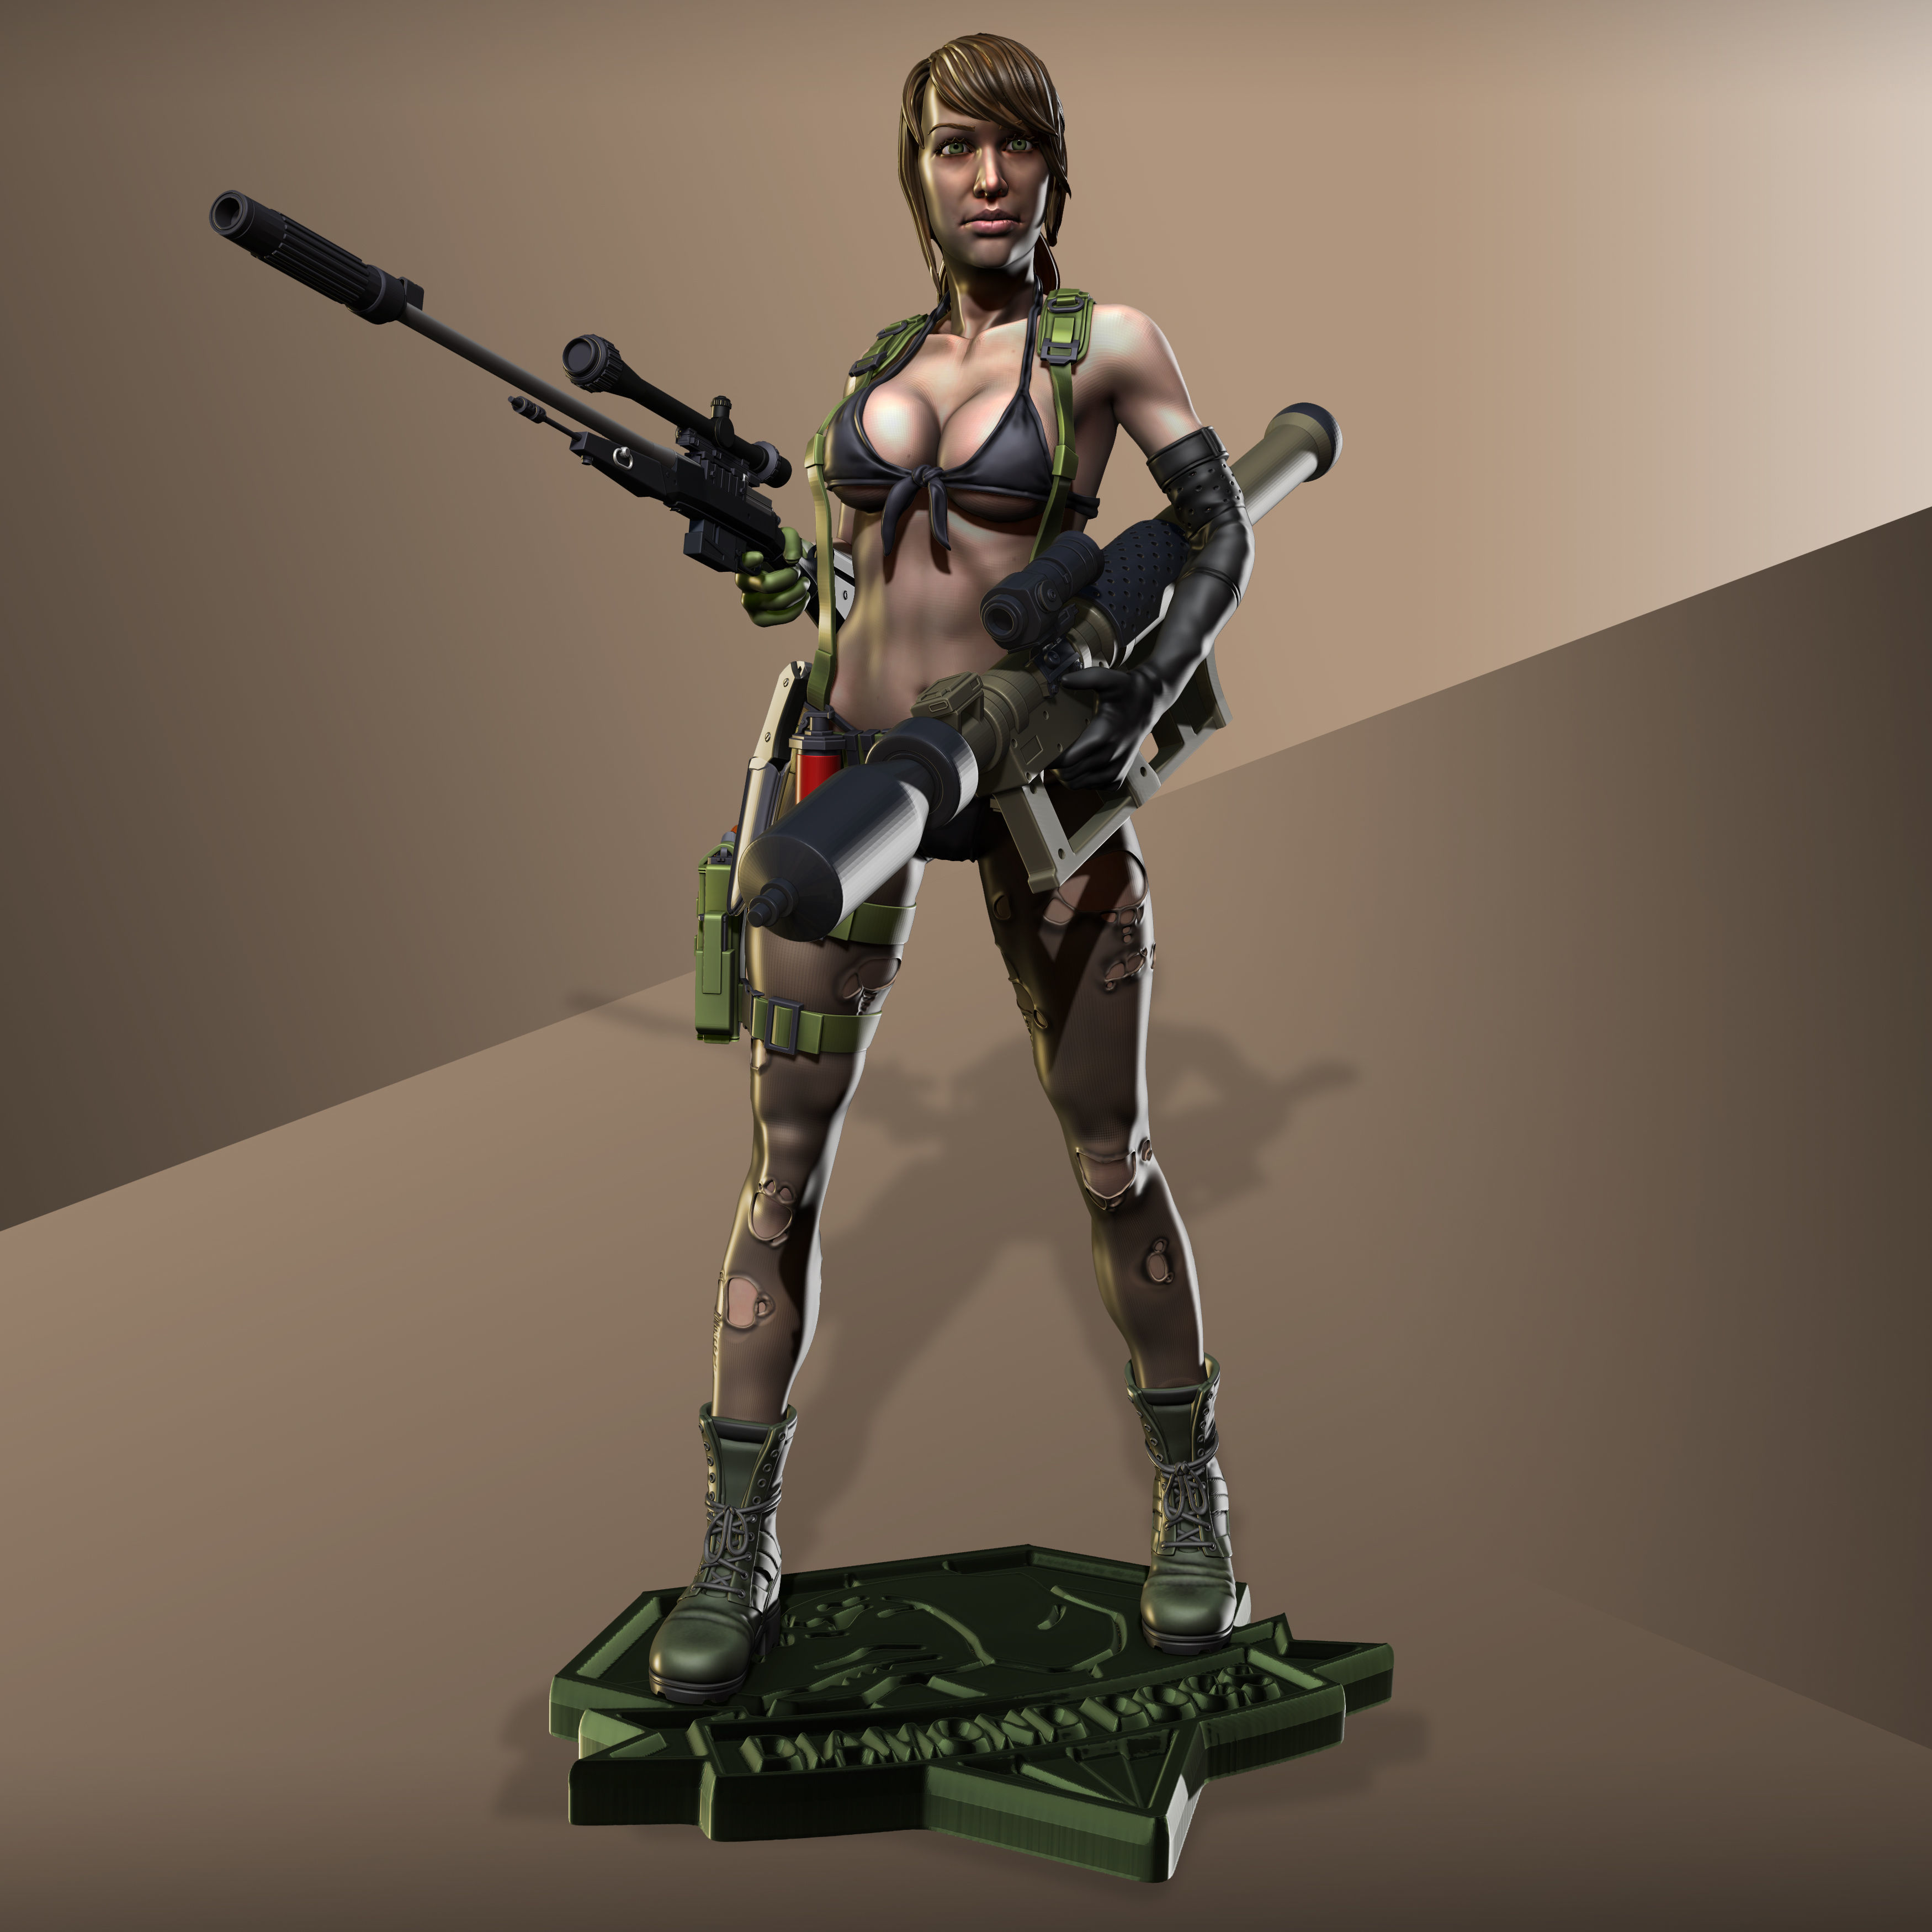 Metal Gear Solid 5 - Quiet model for 3d Print collectibles